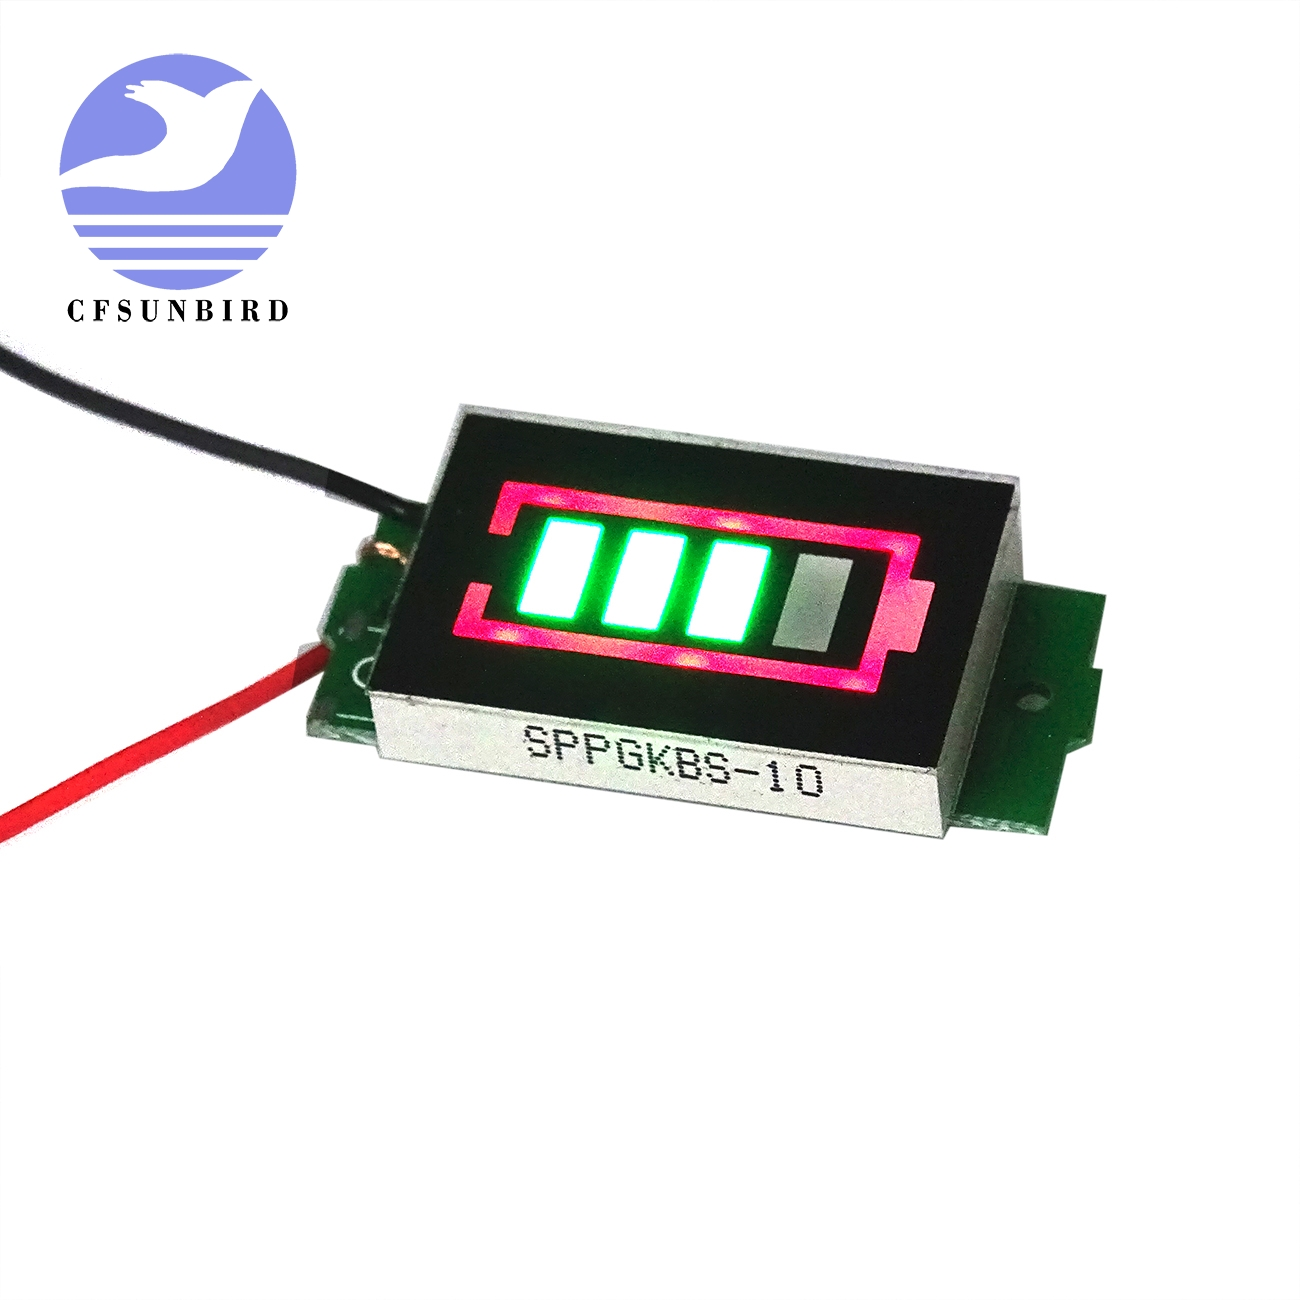 Cfsunbird 1s Single 37v Power Level Lithium Battery Capacity Blue Flat Indicator Display Module In Electronics Production Machinery From Electronic Components